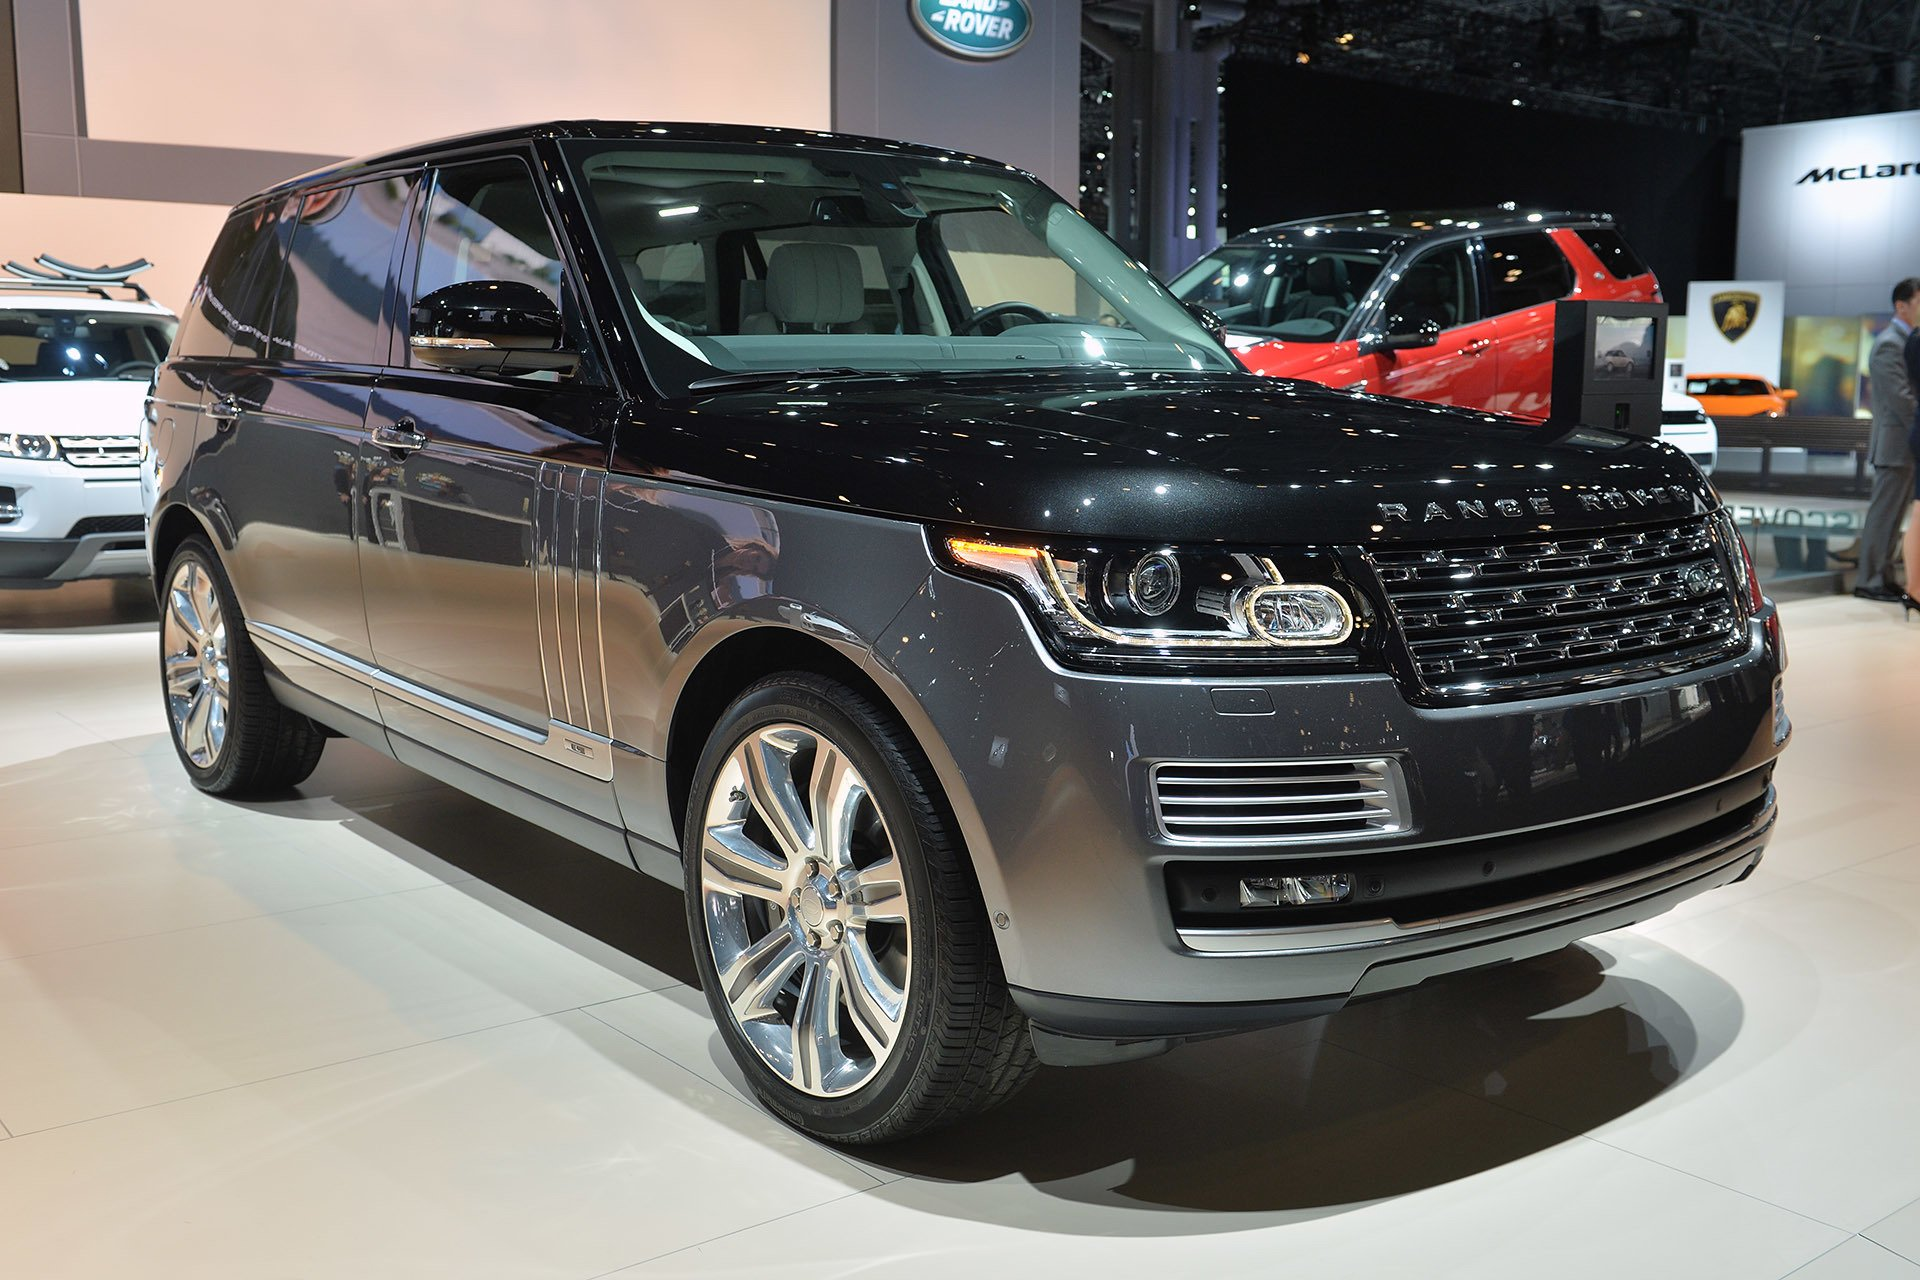 range rover sv autobiography suv cars luxury 2016 wallpaper 1920x1280 653609 wallpaperup. Black Bedroom Furniture Sets. Home Design Ideas